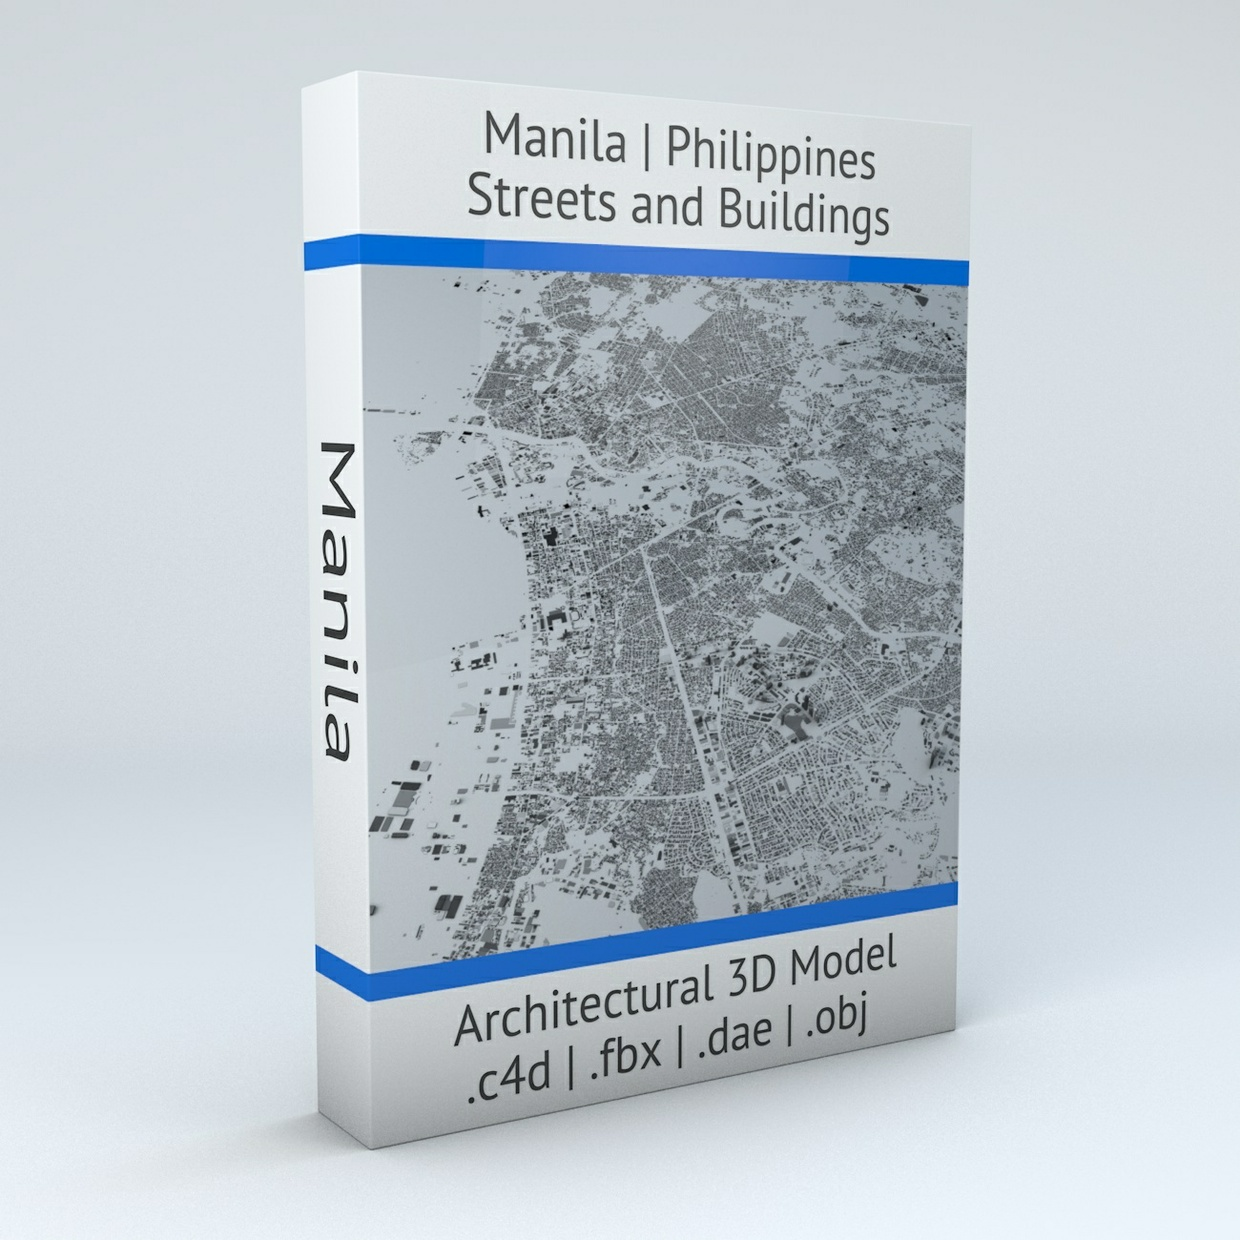 Manila Streets and Buildings Architectural 3D Model